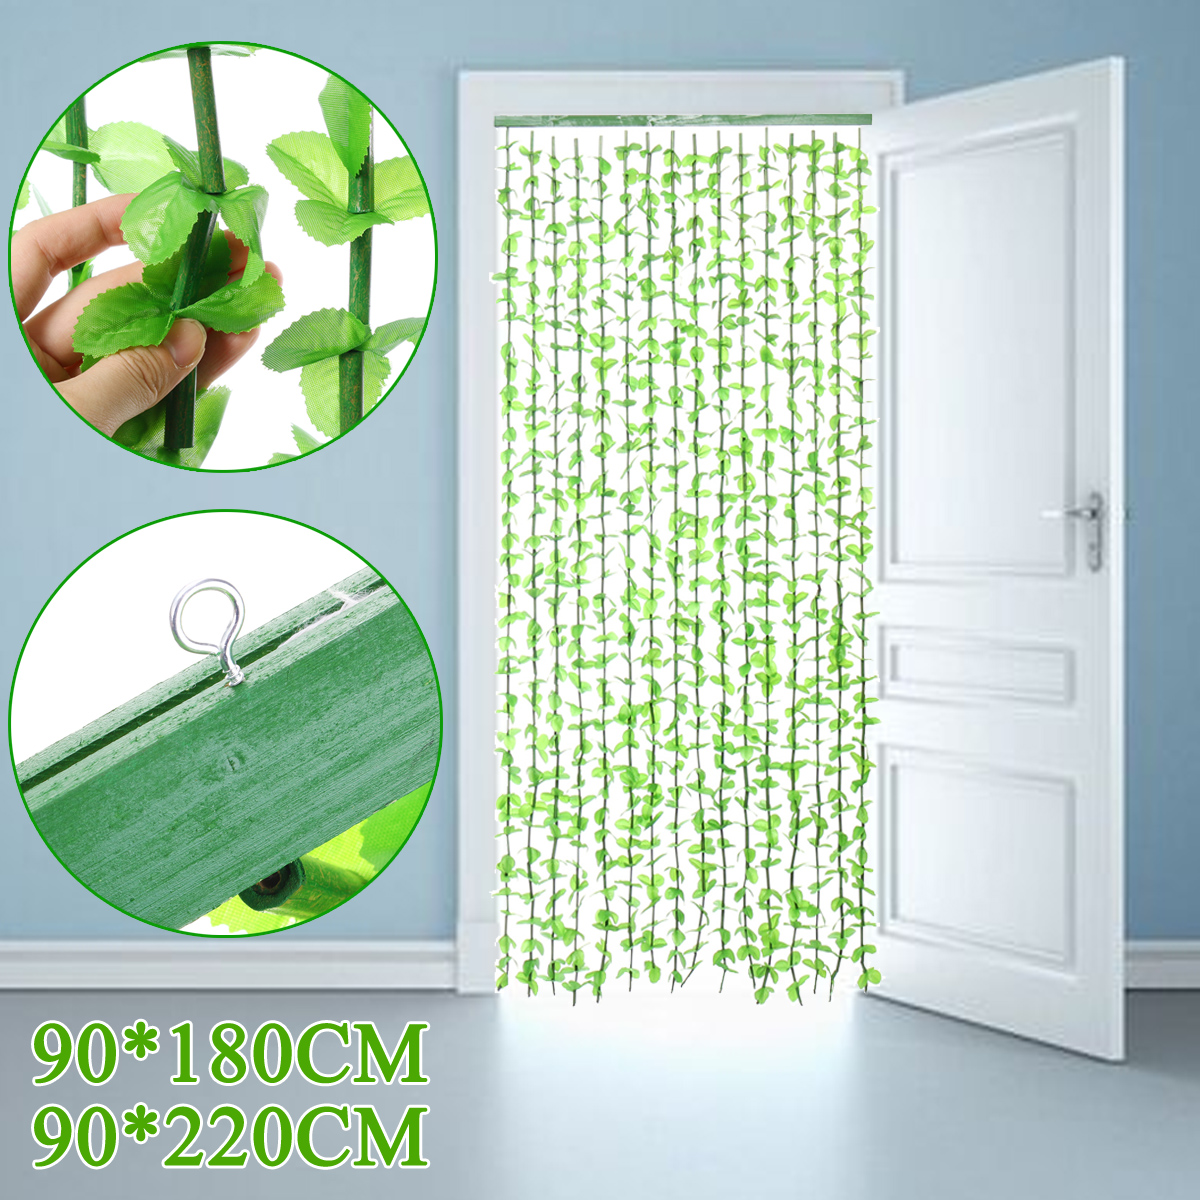 180cm 220cm 16 Lines Green Door Fly Porch Room Leaves String Curtain Decor Ebay